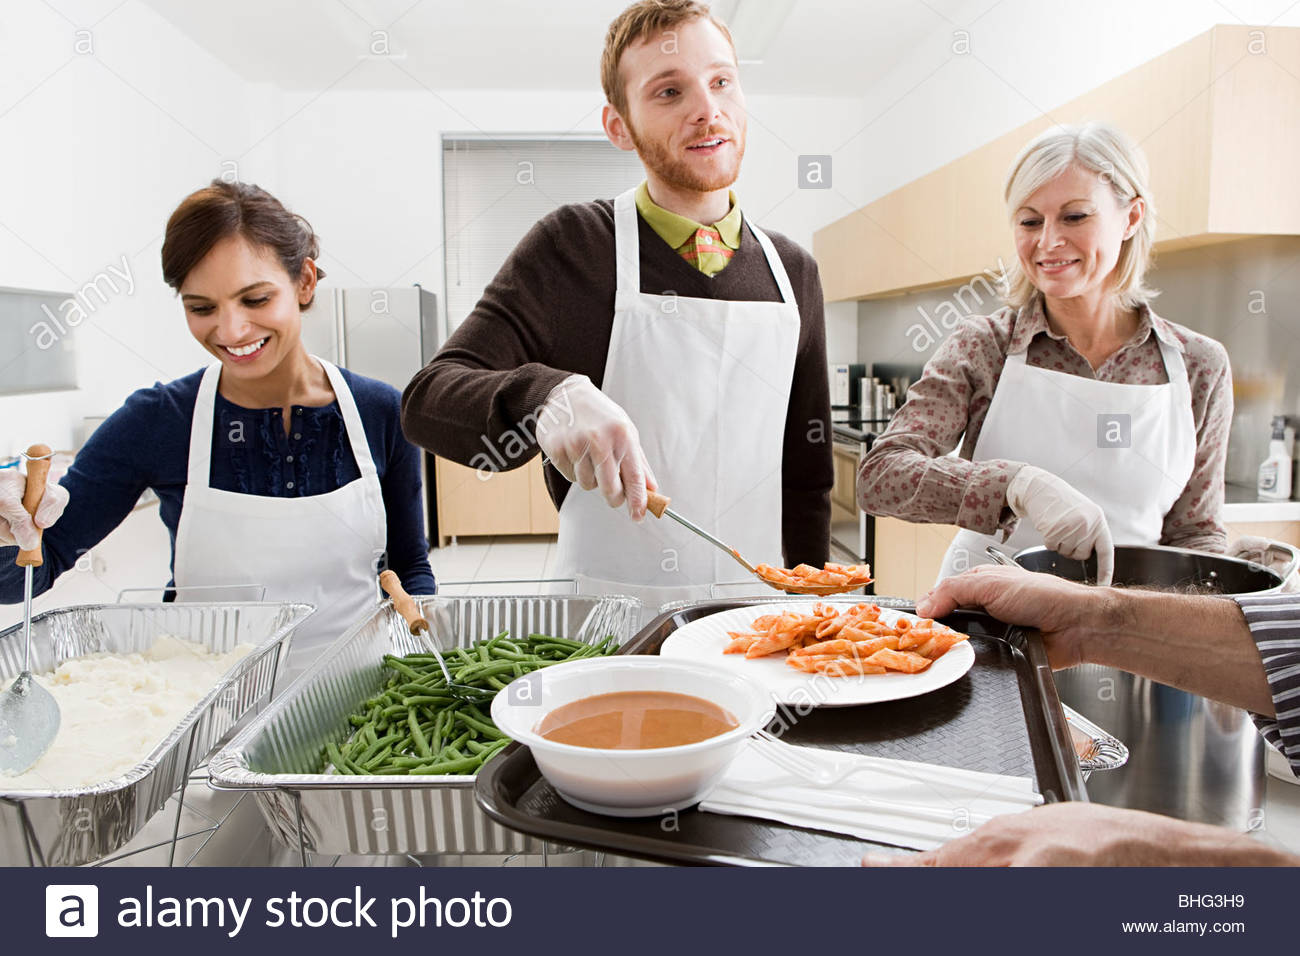 People volunteering at soup kitchen Stock Photo: 28013589 - Alamy